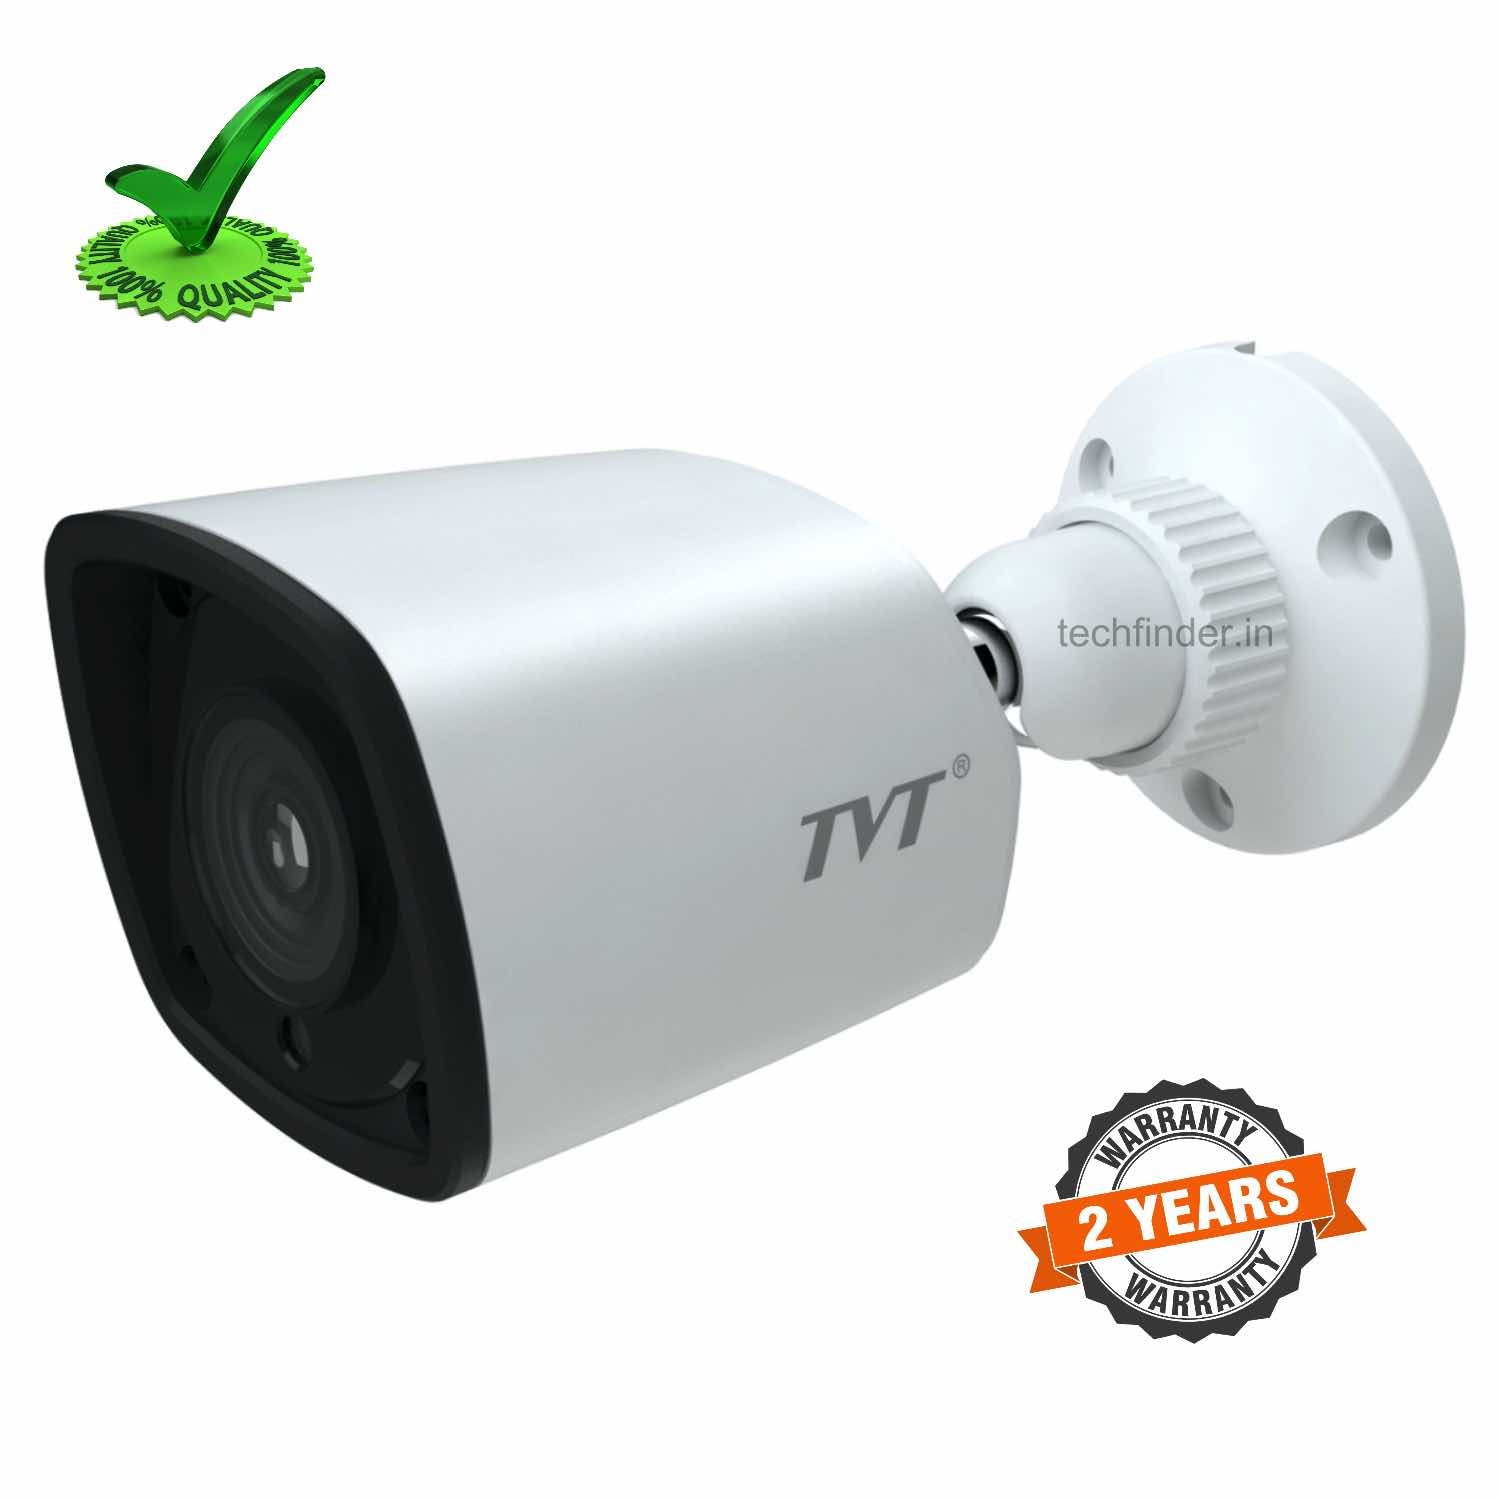 TVT TD 7451AS 5megapixel HD Ir  Bullet Camera